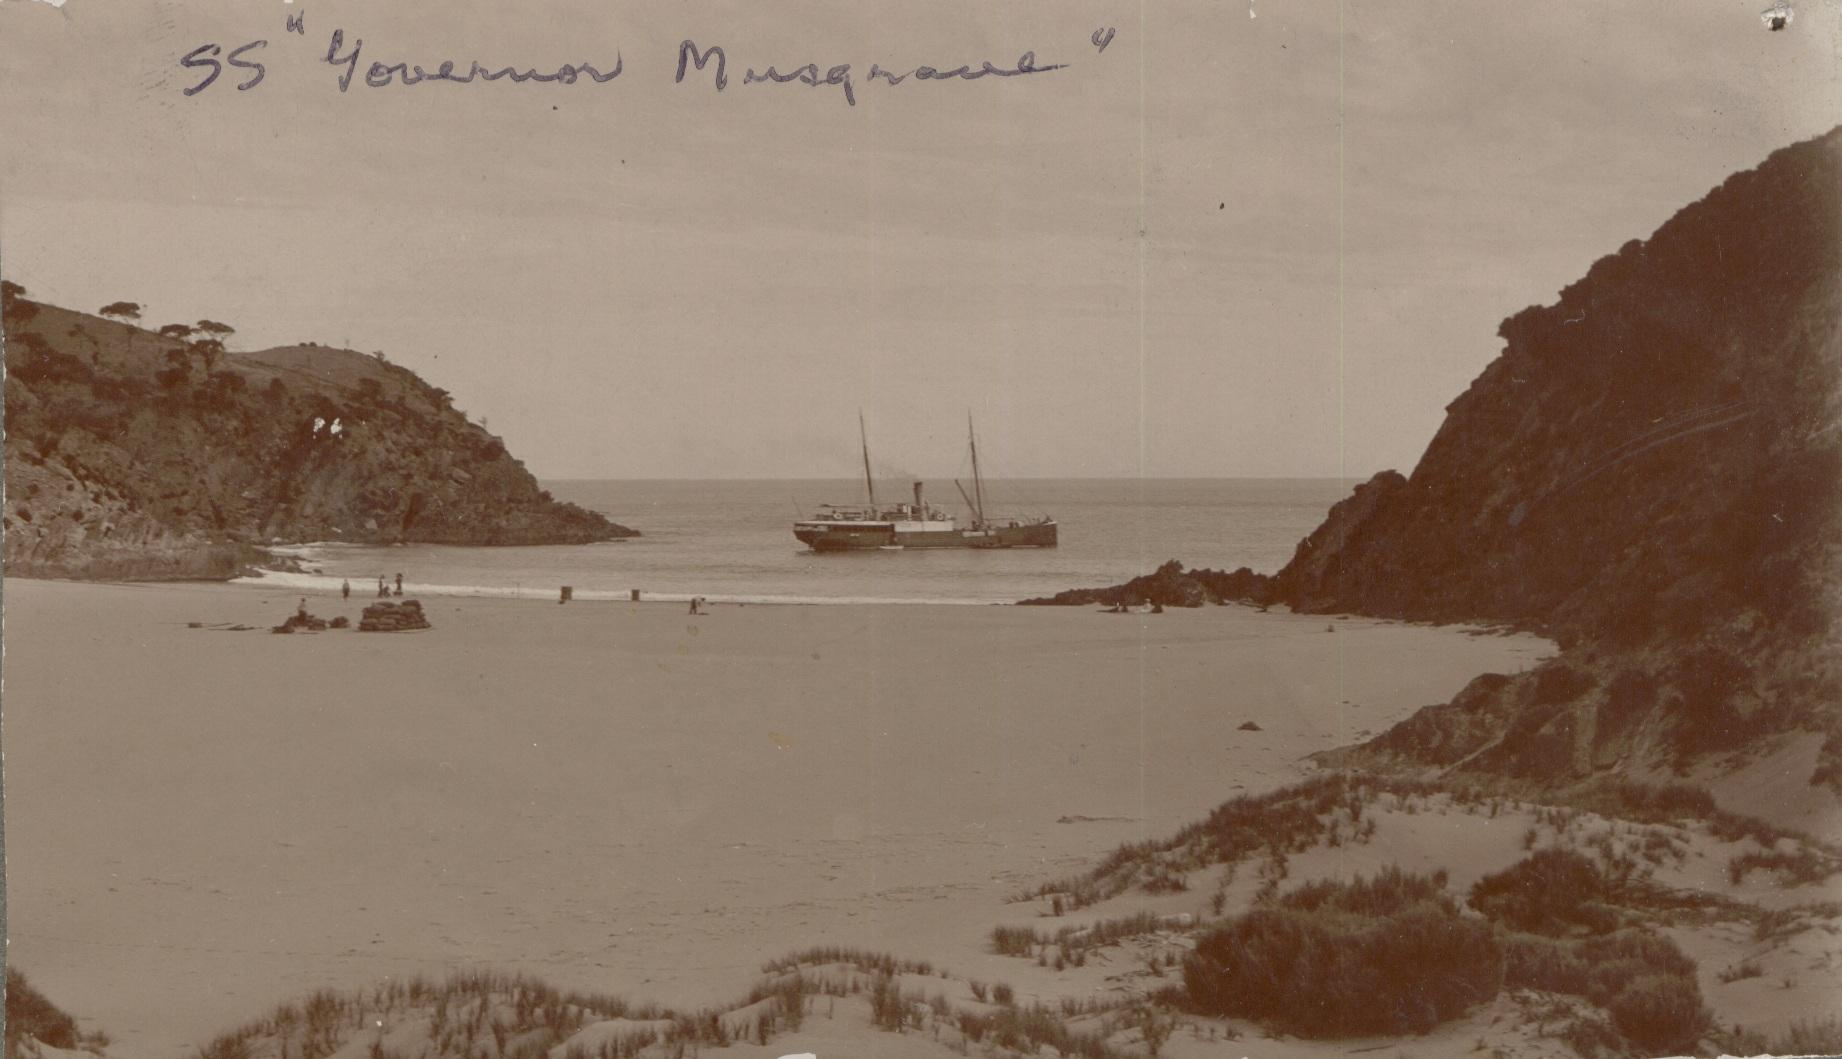 """Steamship """"Governor musgrave"""", built in 1874 by Mort's Dock & Engineering Co for the Marine Board of SA.  For many years this vessel was employed for all kinds of coastal service; repairs to jetties, investigating and attending wrecks, delivering stores t"""